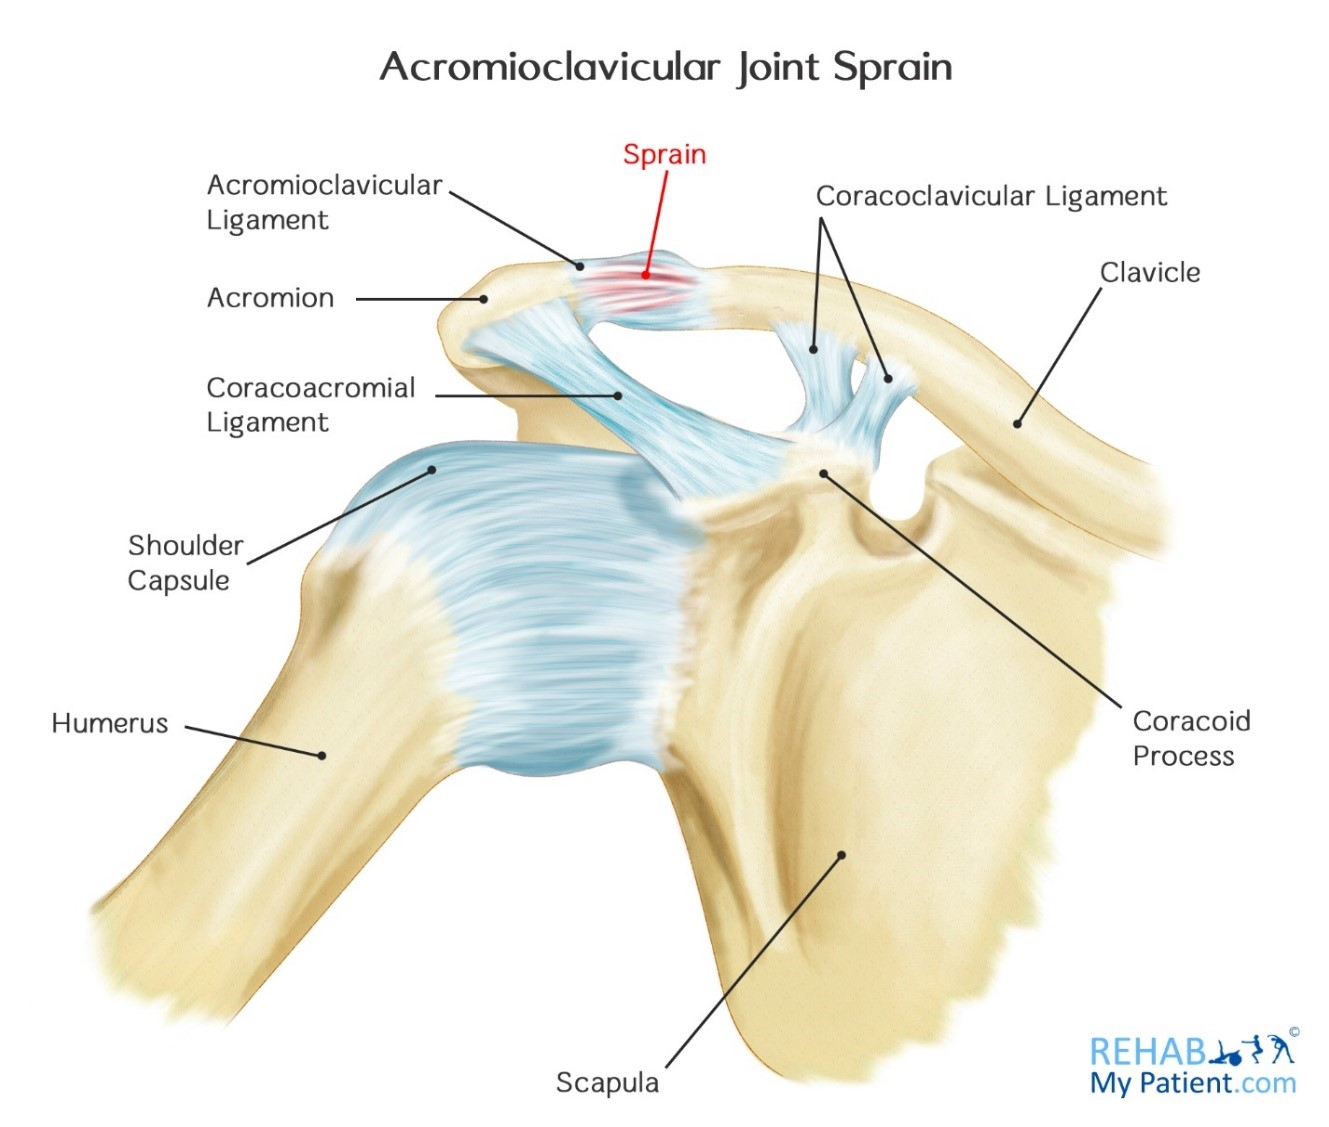 Acromioclavicular Joint Sprain | Rehab My Patient